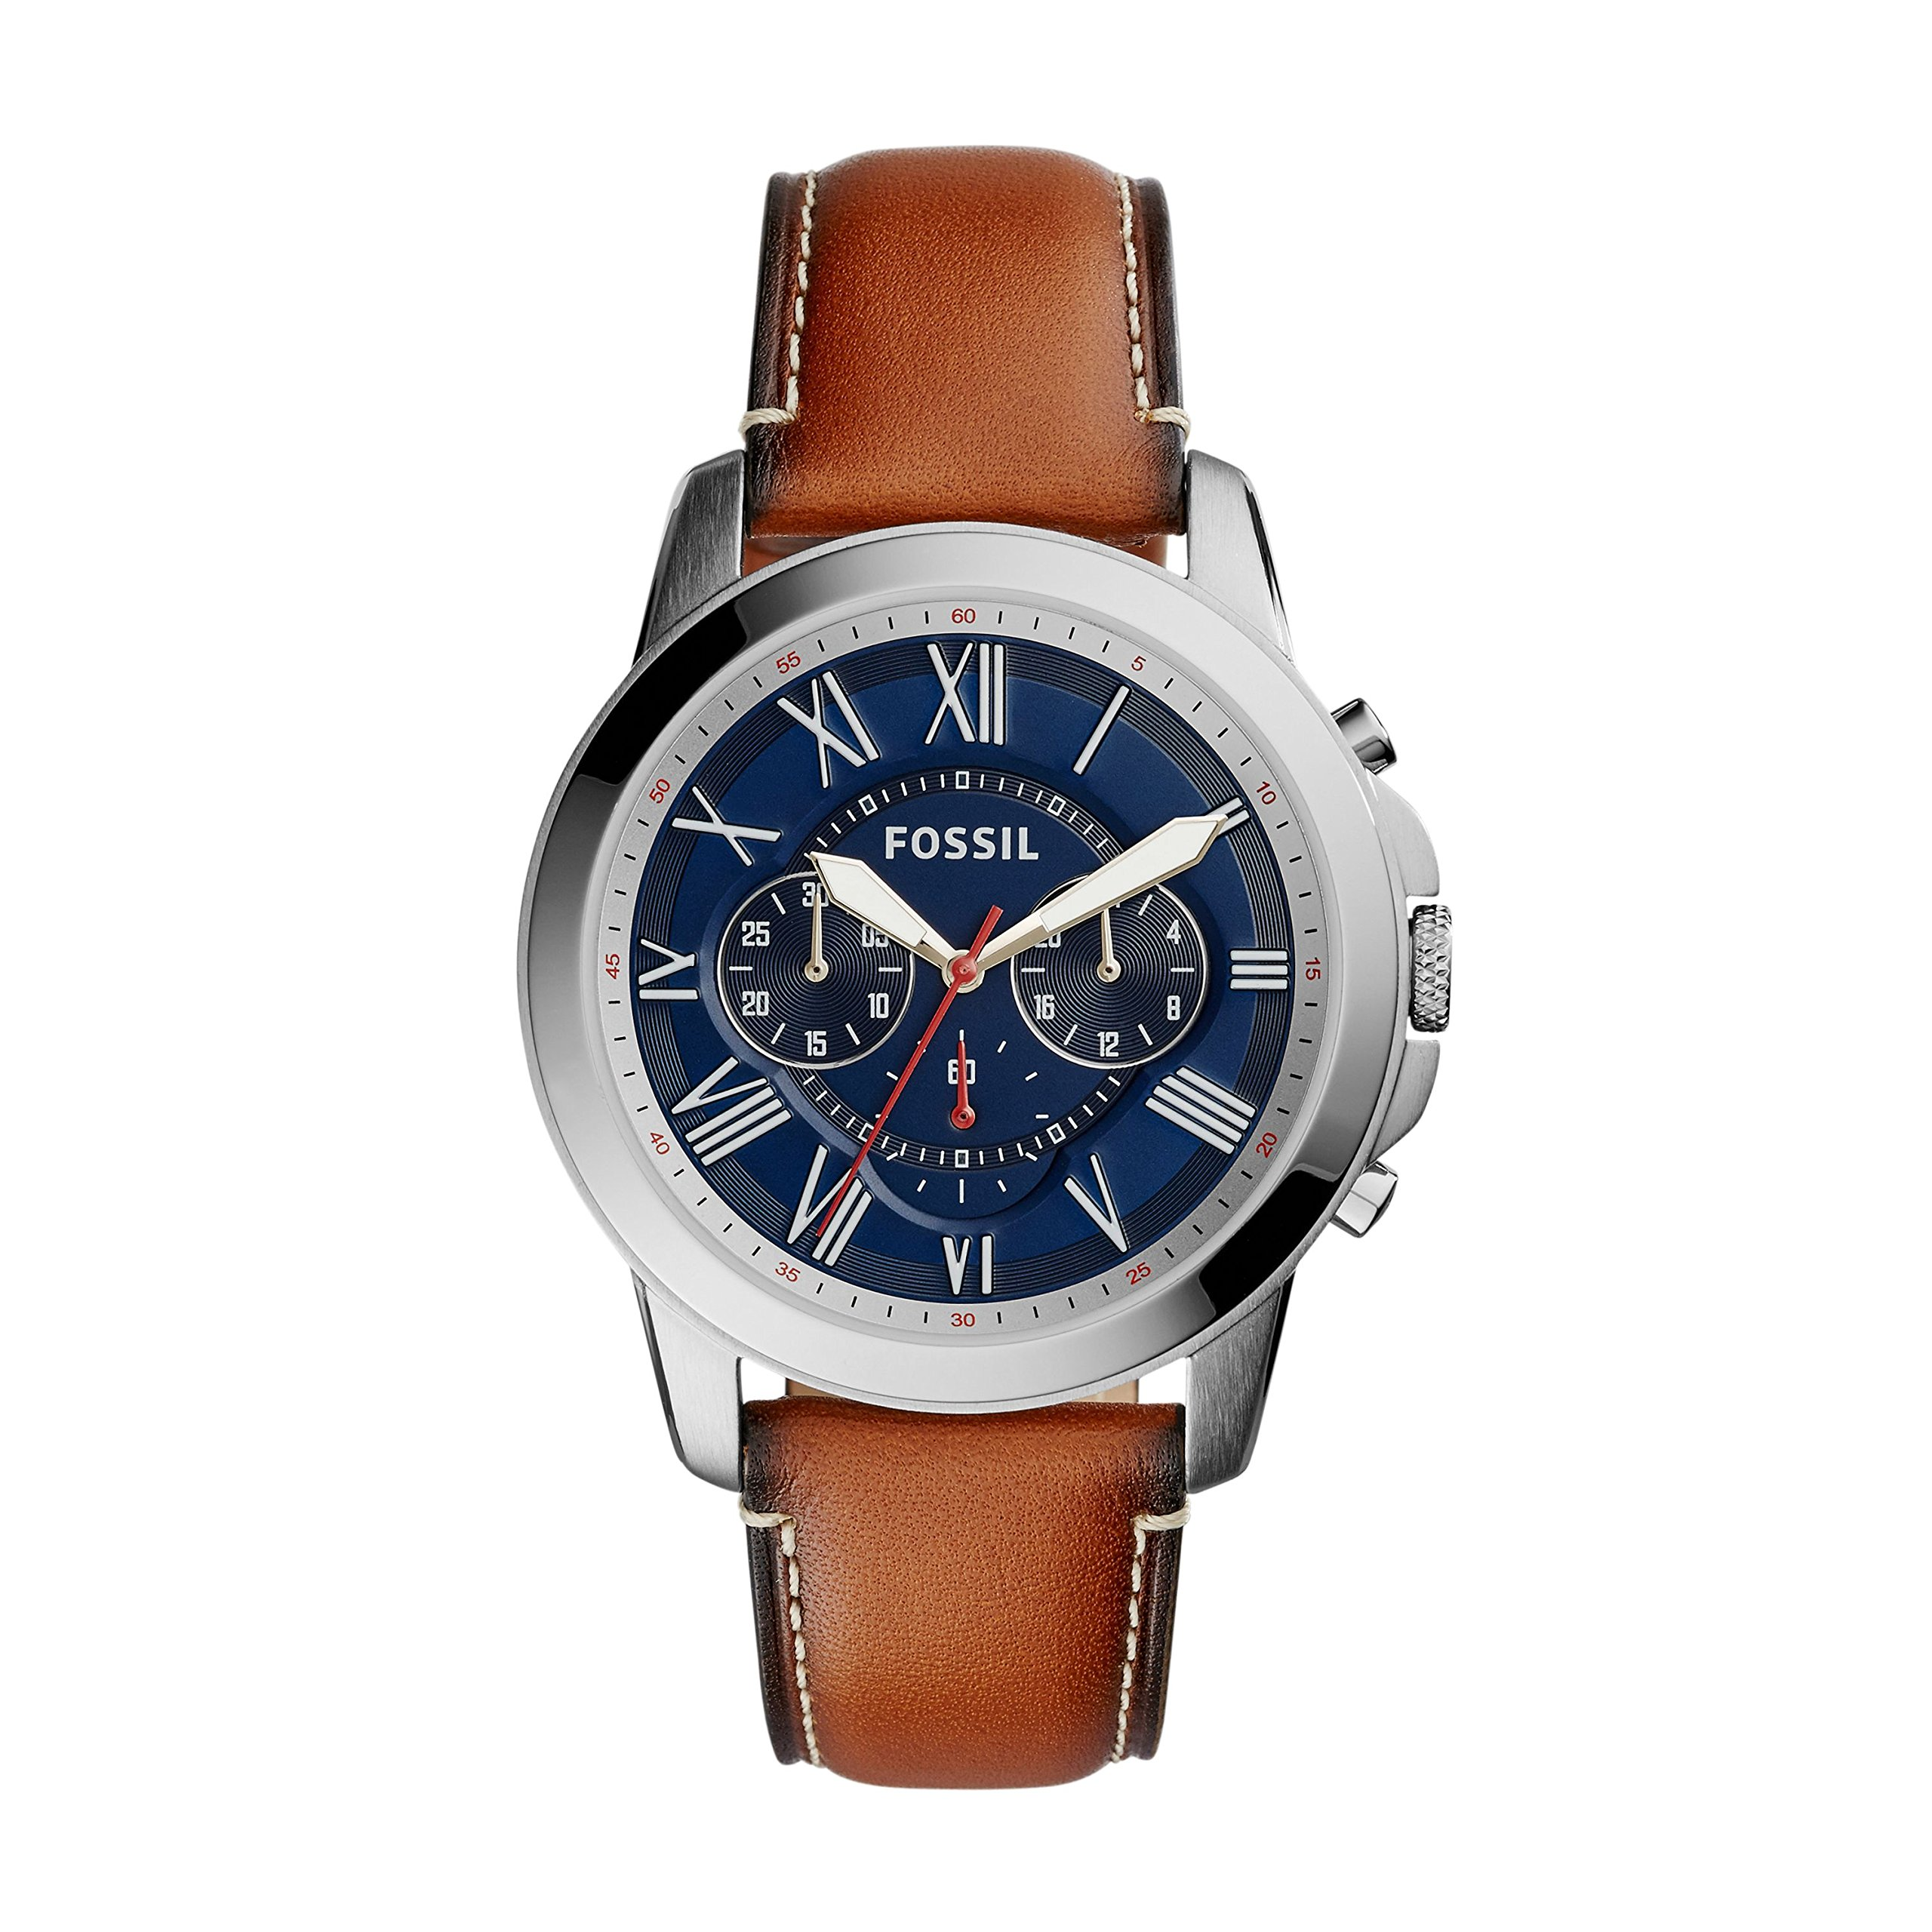 Fossil Men's Grant Quartz Stainless Steel and Leather Chronograph Watch, Color: Silver, Brown (Model: FS5210IE) by Fossil